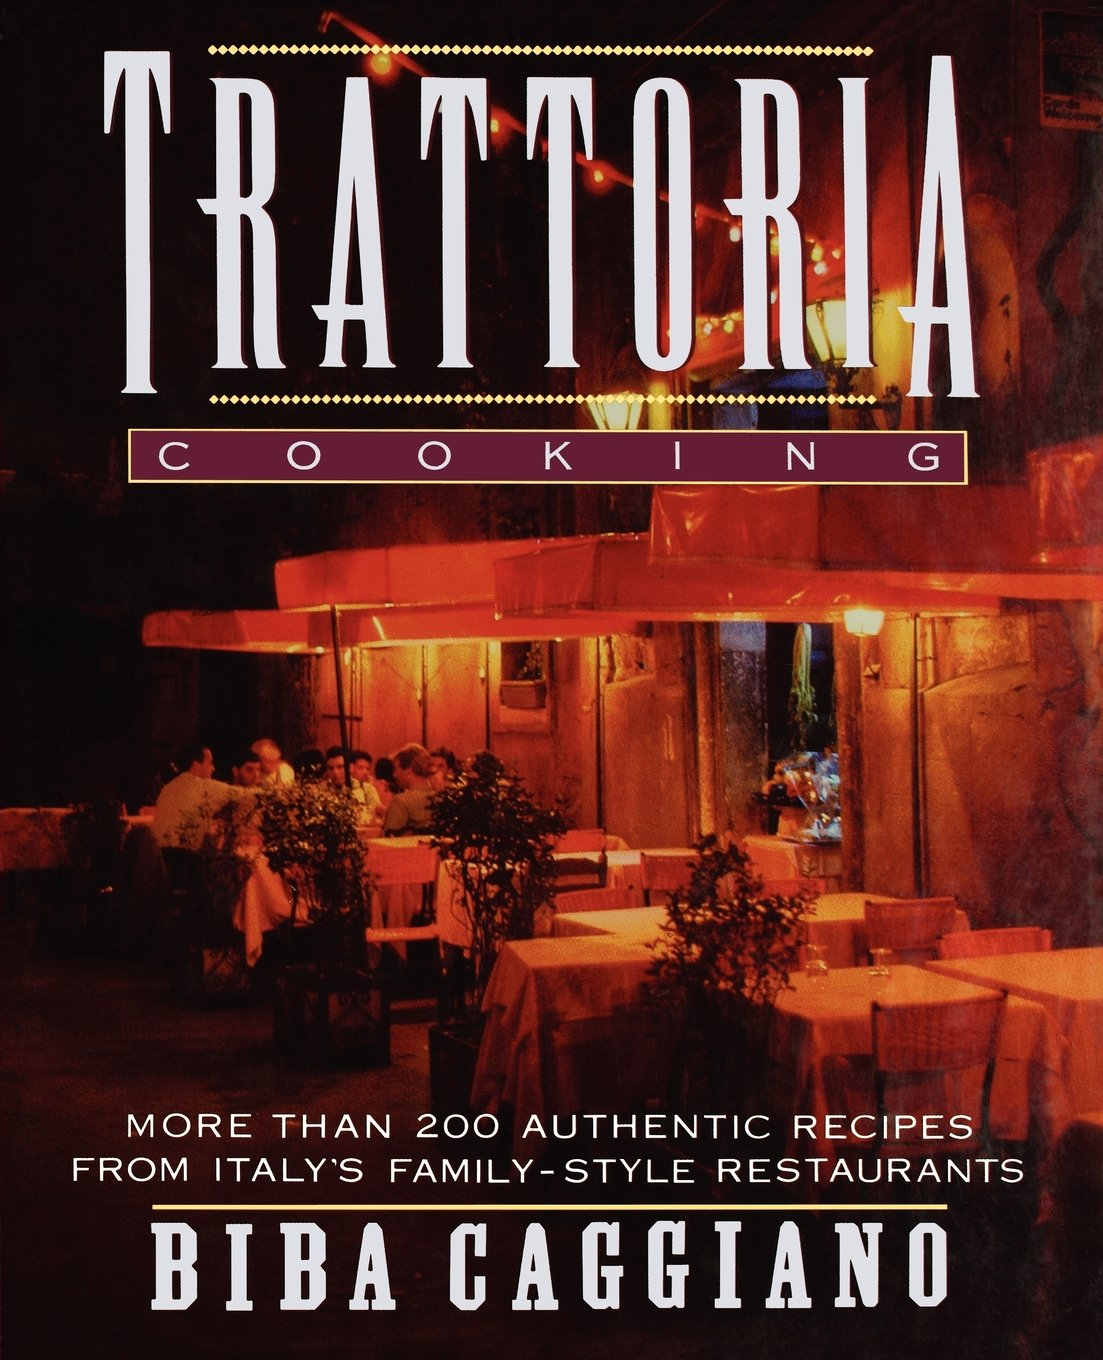 Trattoria Cooking: More than 200 authentic recipes from Italy's family-style  restaurants: Biba Caggiano, Charles Waller: 9780025202528: Amazon.com: Books